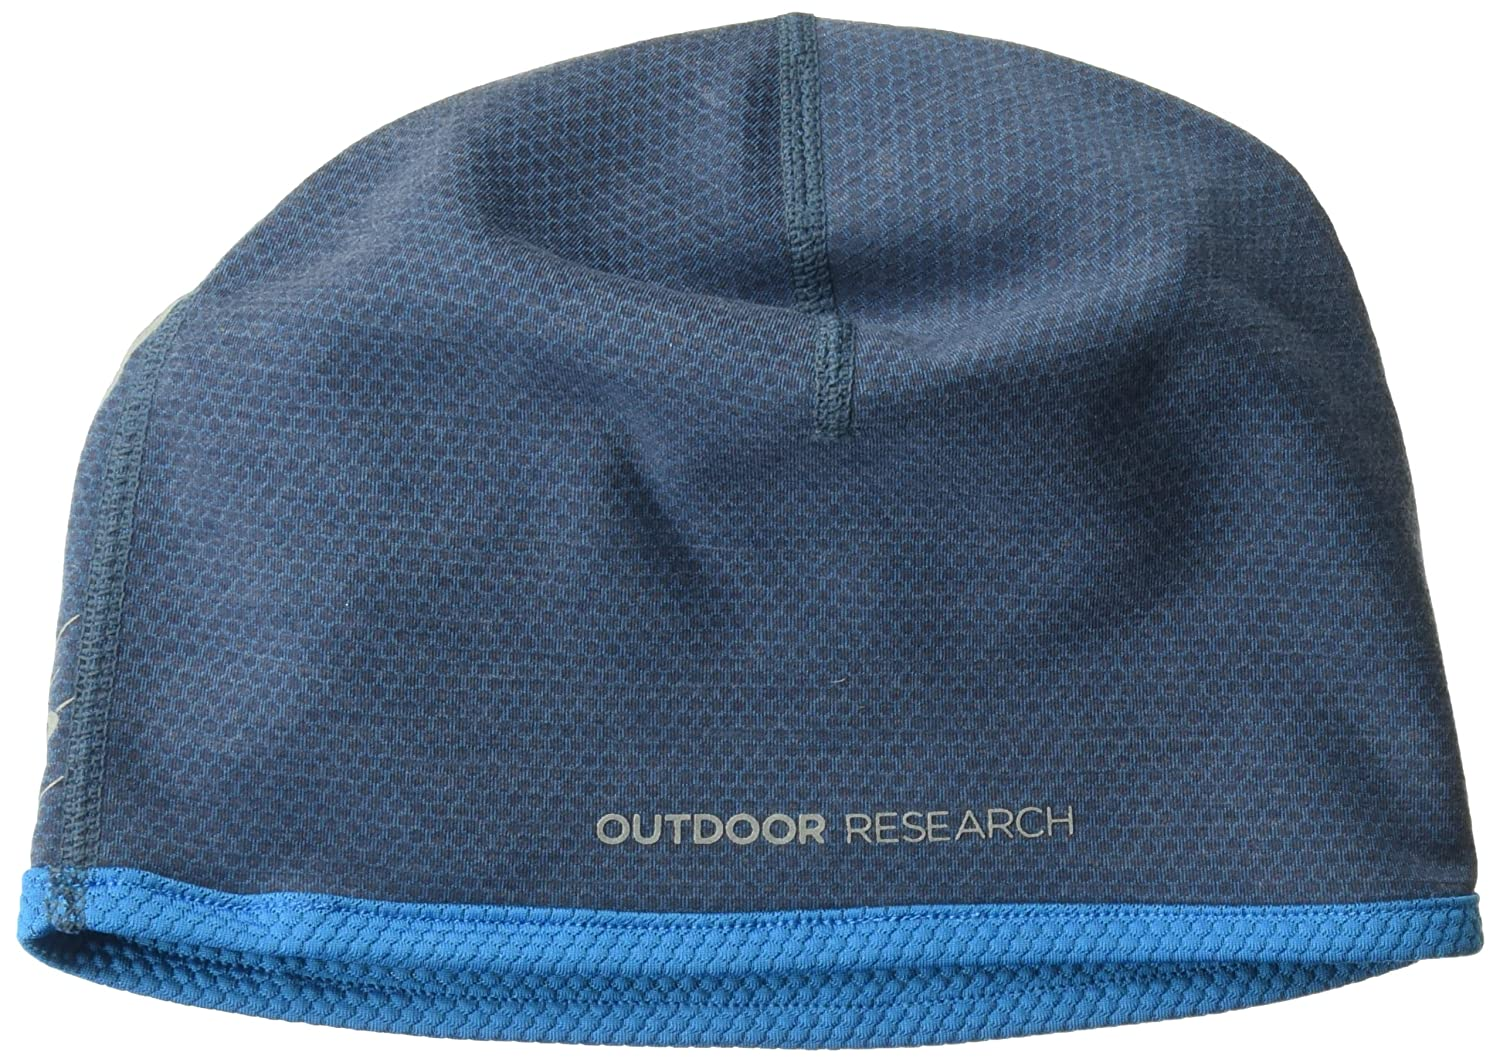 6c6a3f6f649 Amazon.com  Outdoor Research Shiftup Beanie